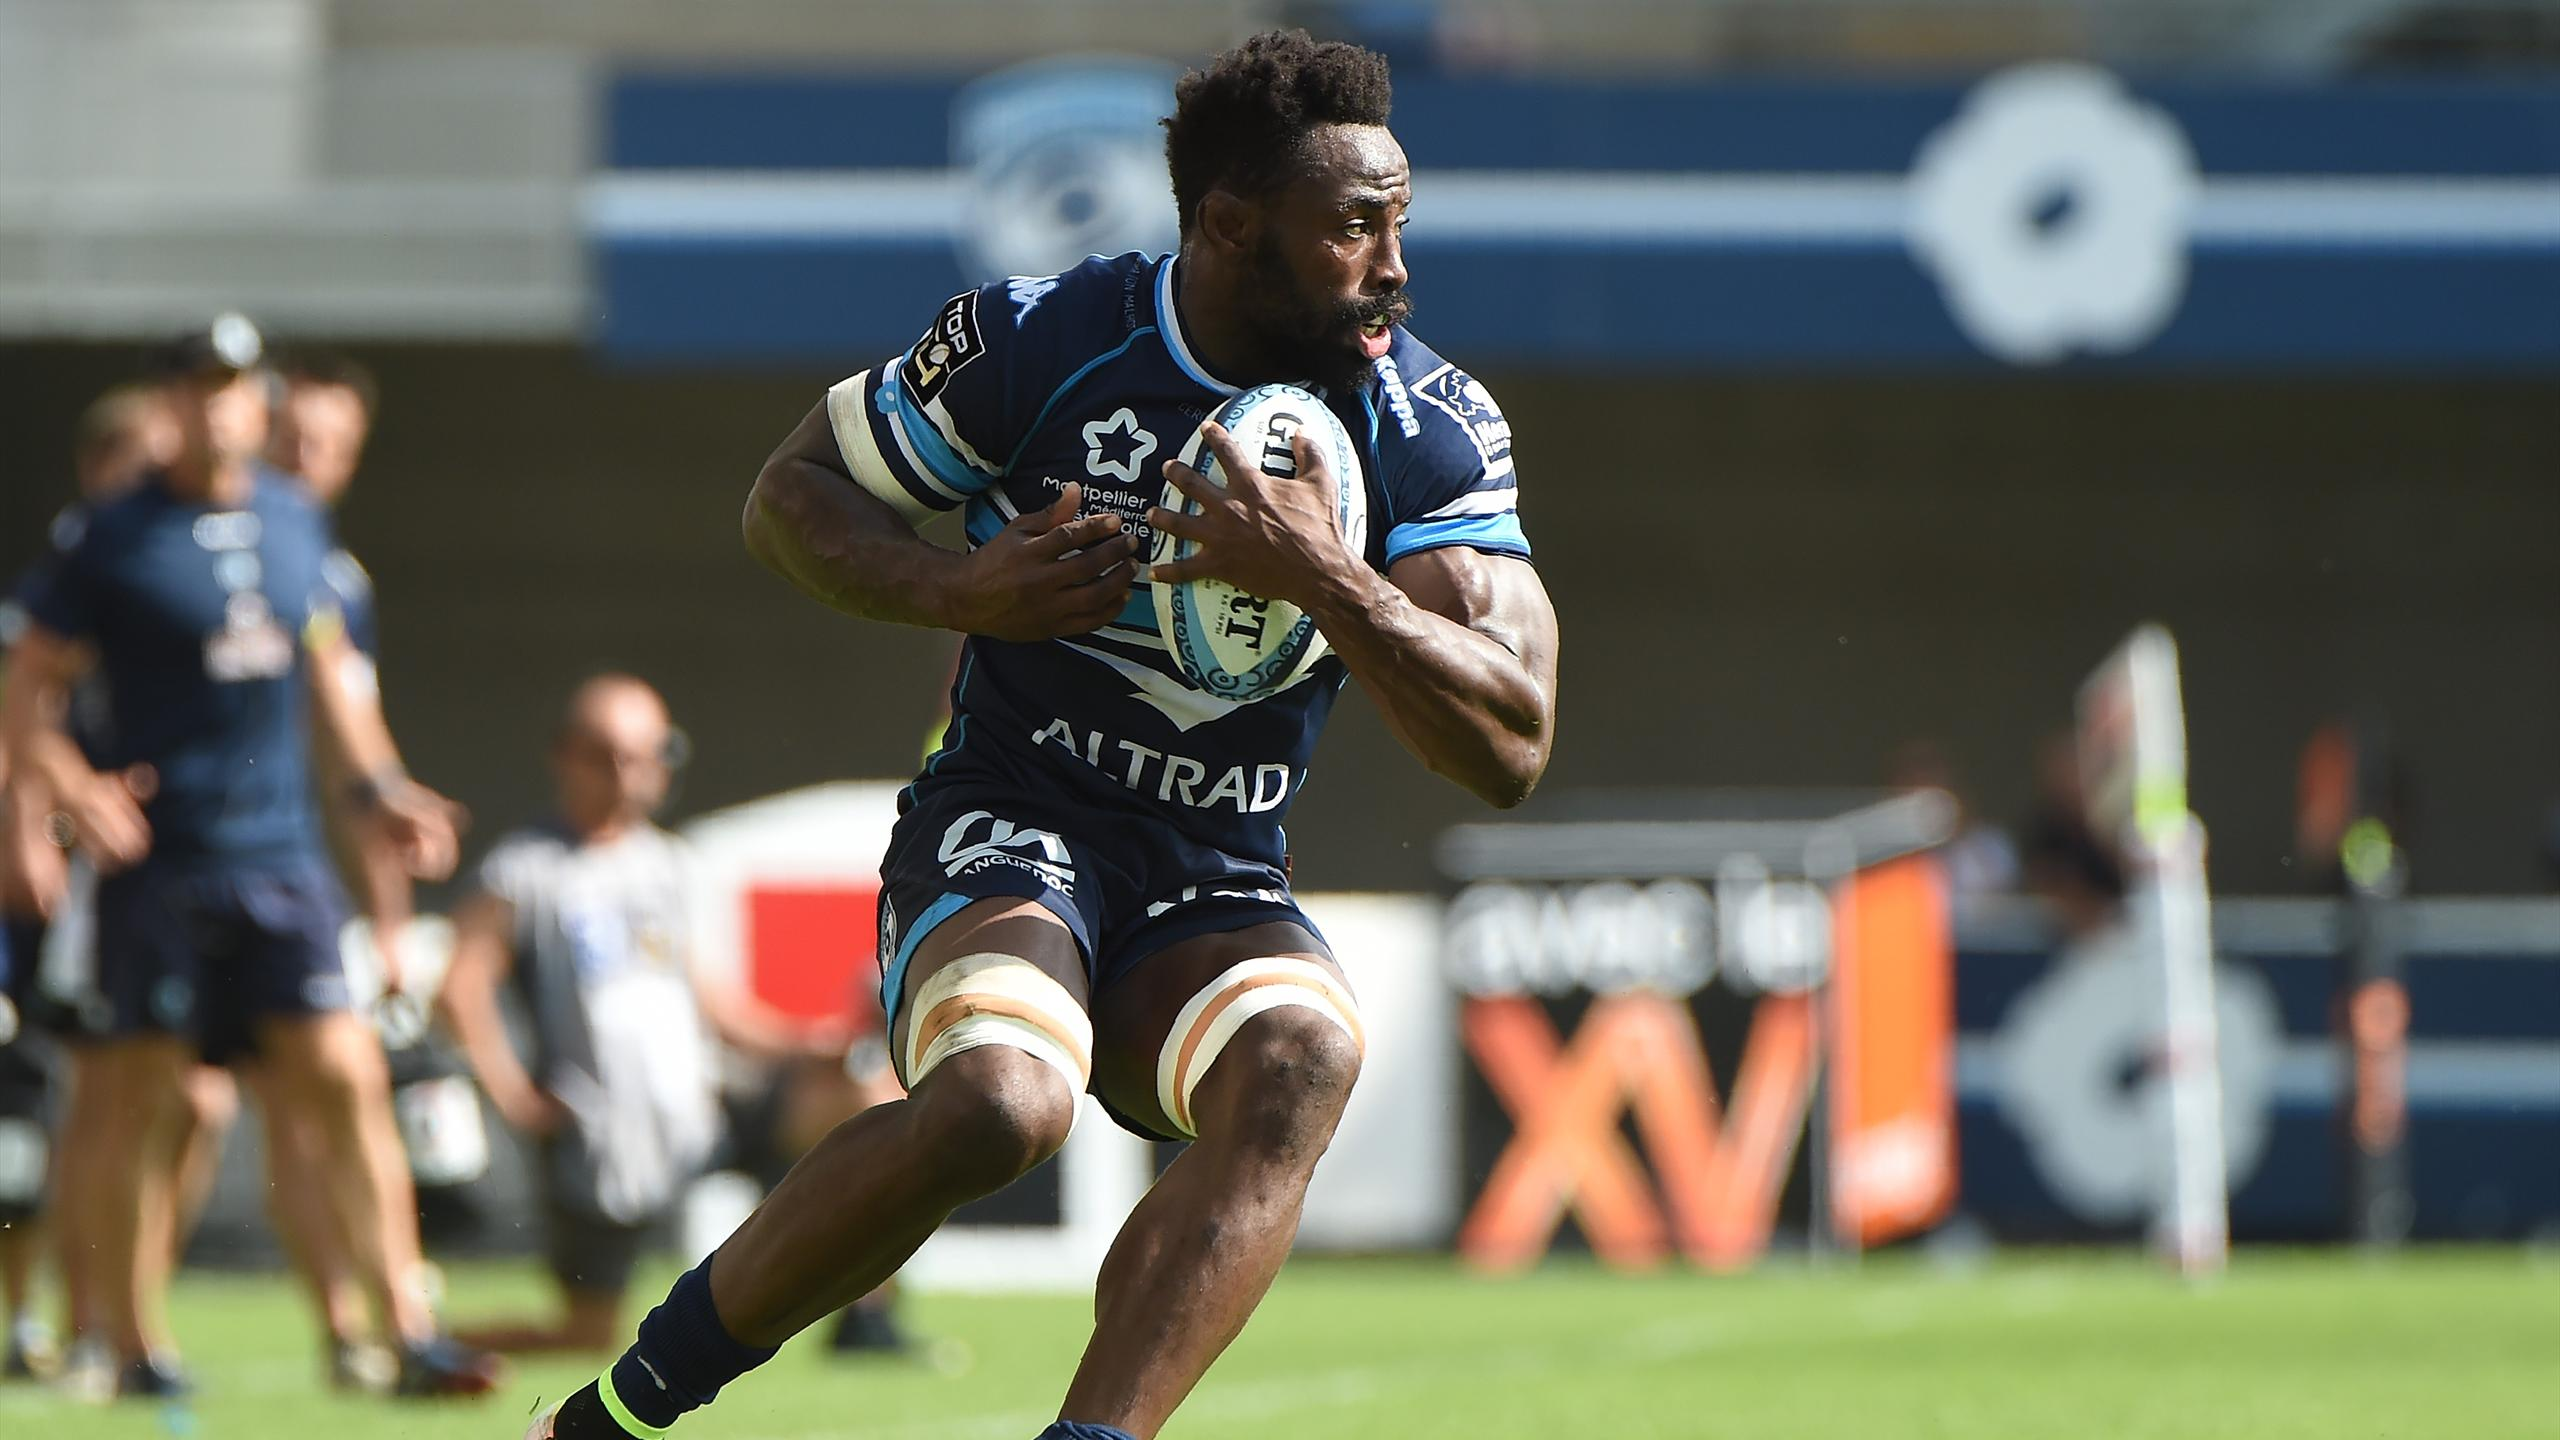 Fulgence Ouedraogo (Montpellier) - 28 août 2016